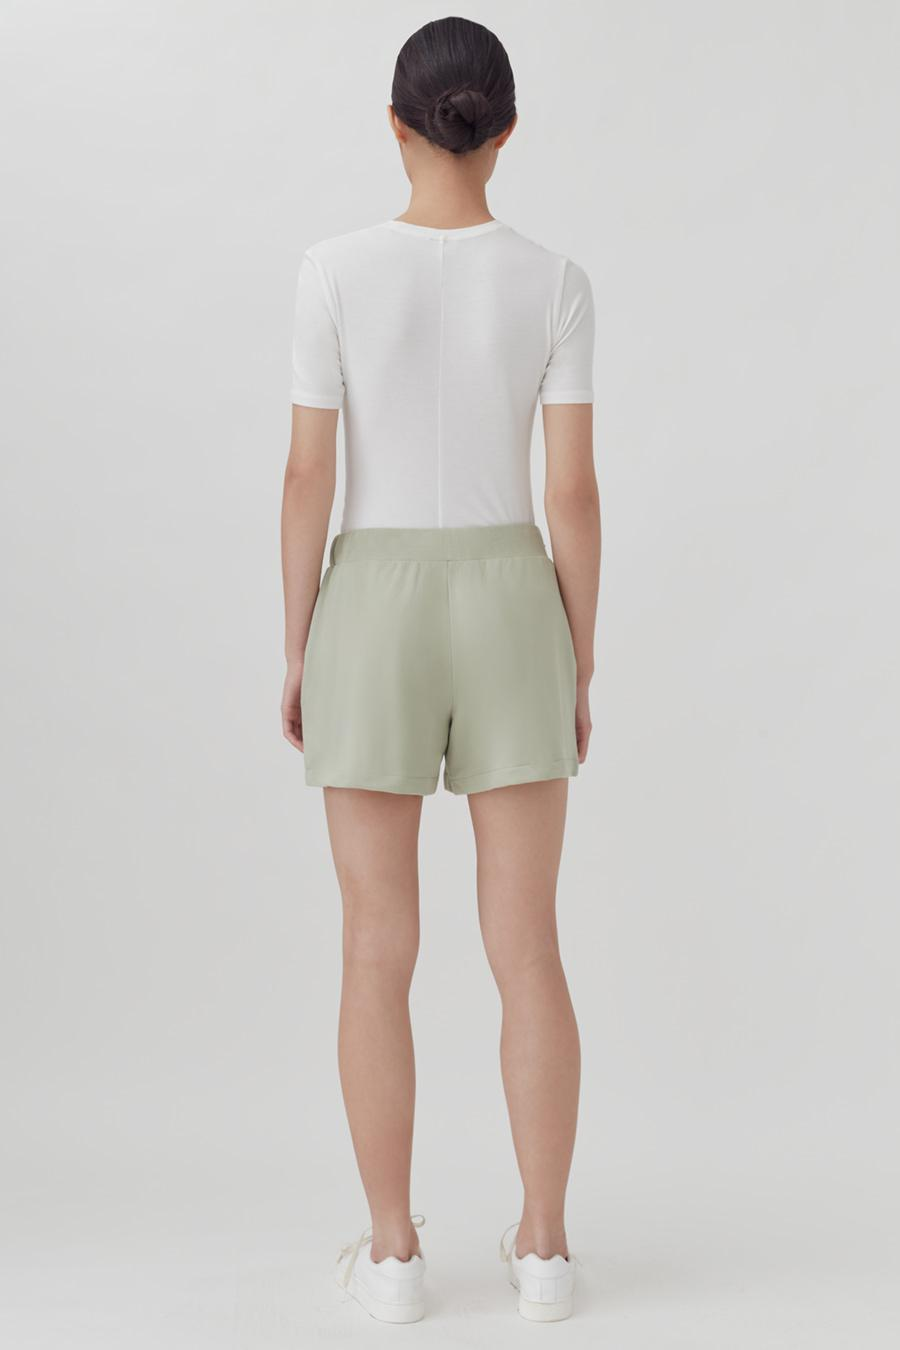 Women's French Terry Shorts in Sage | Size: 2